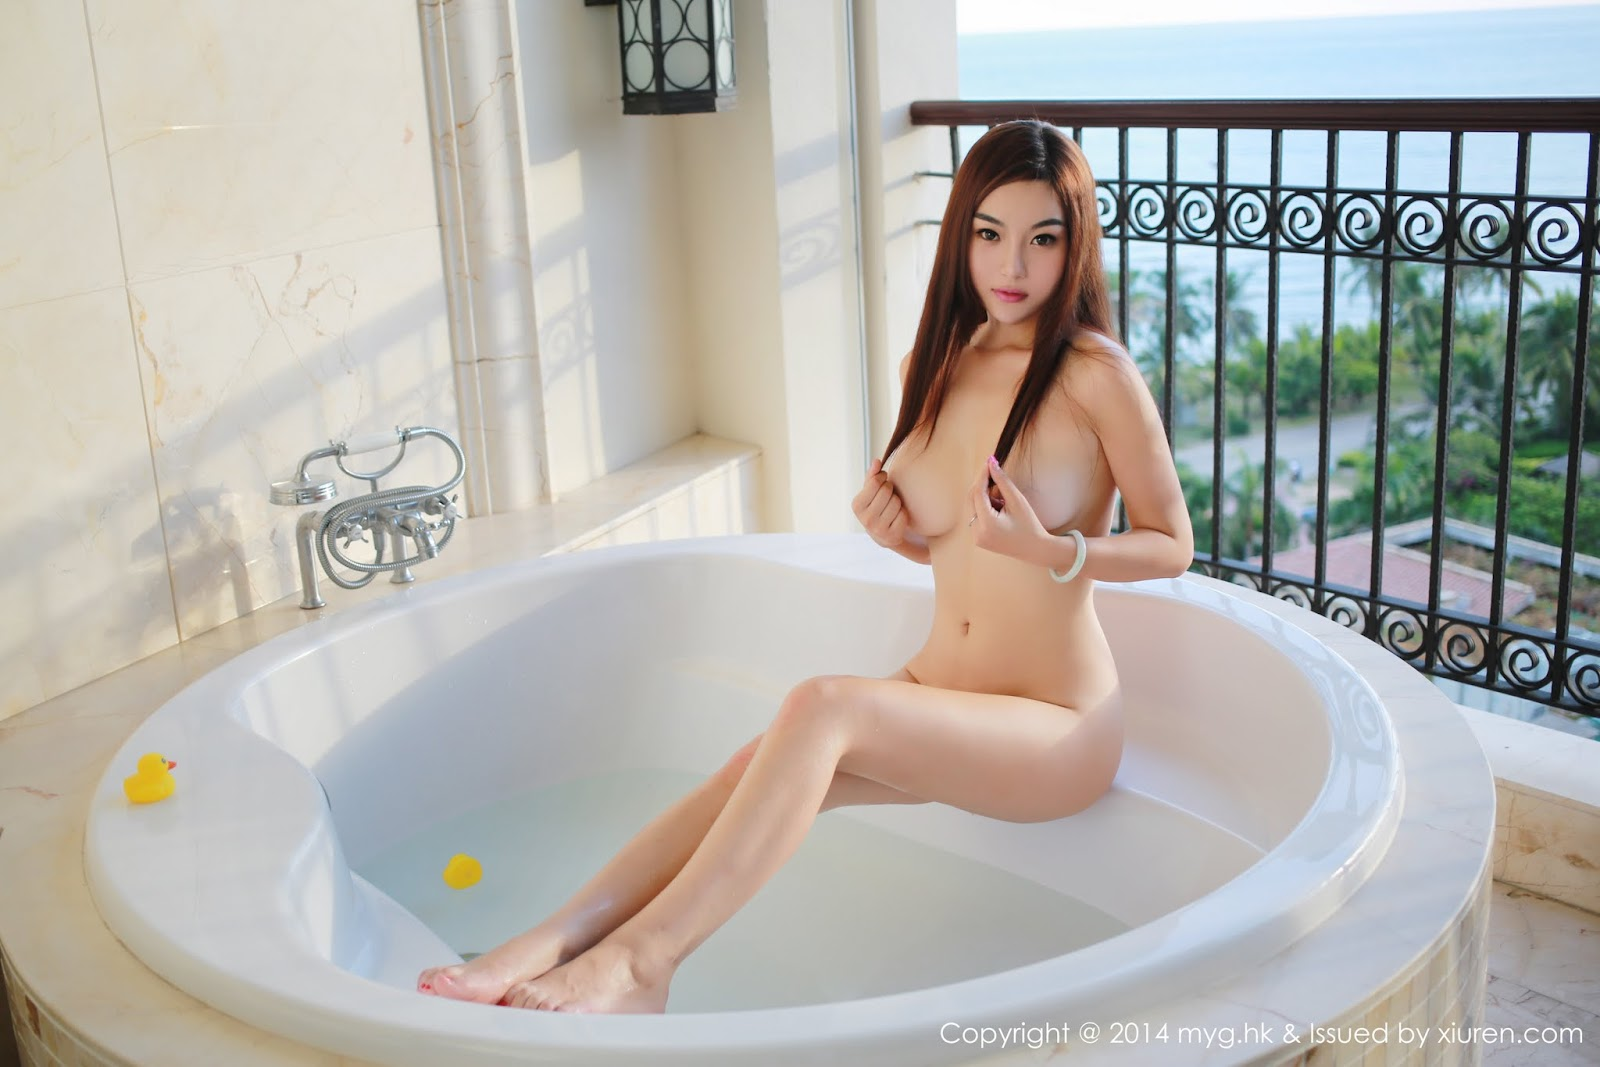 0013 - Beautiful Naked Girl Model MYGIRL VOL.35